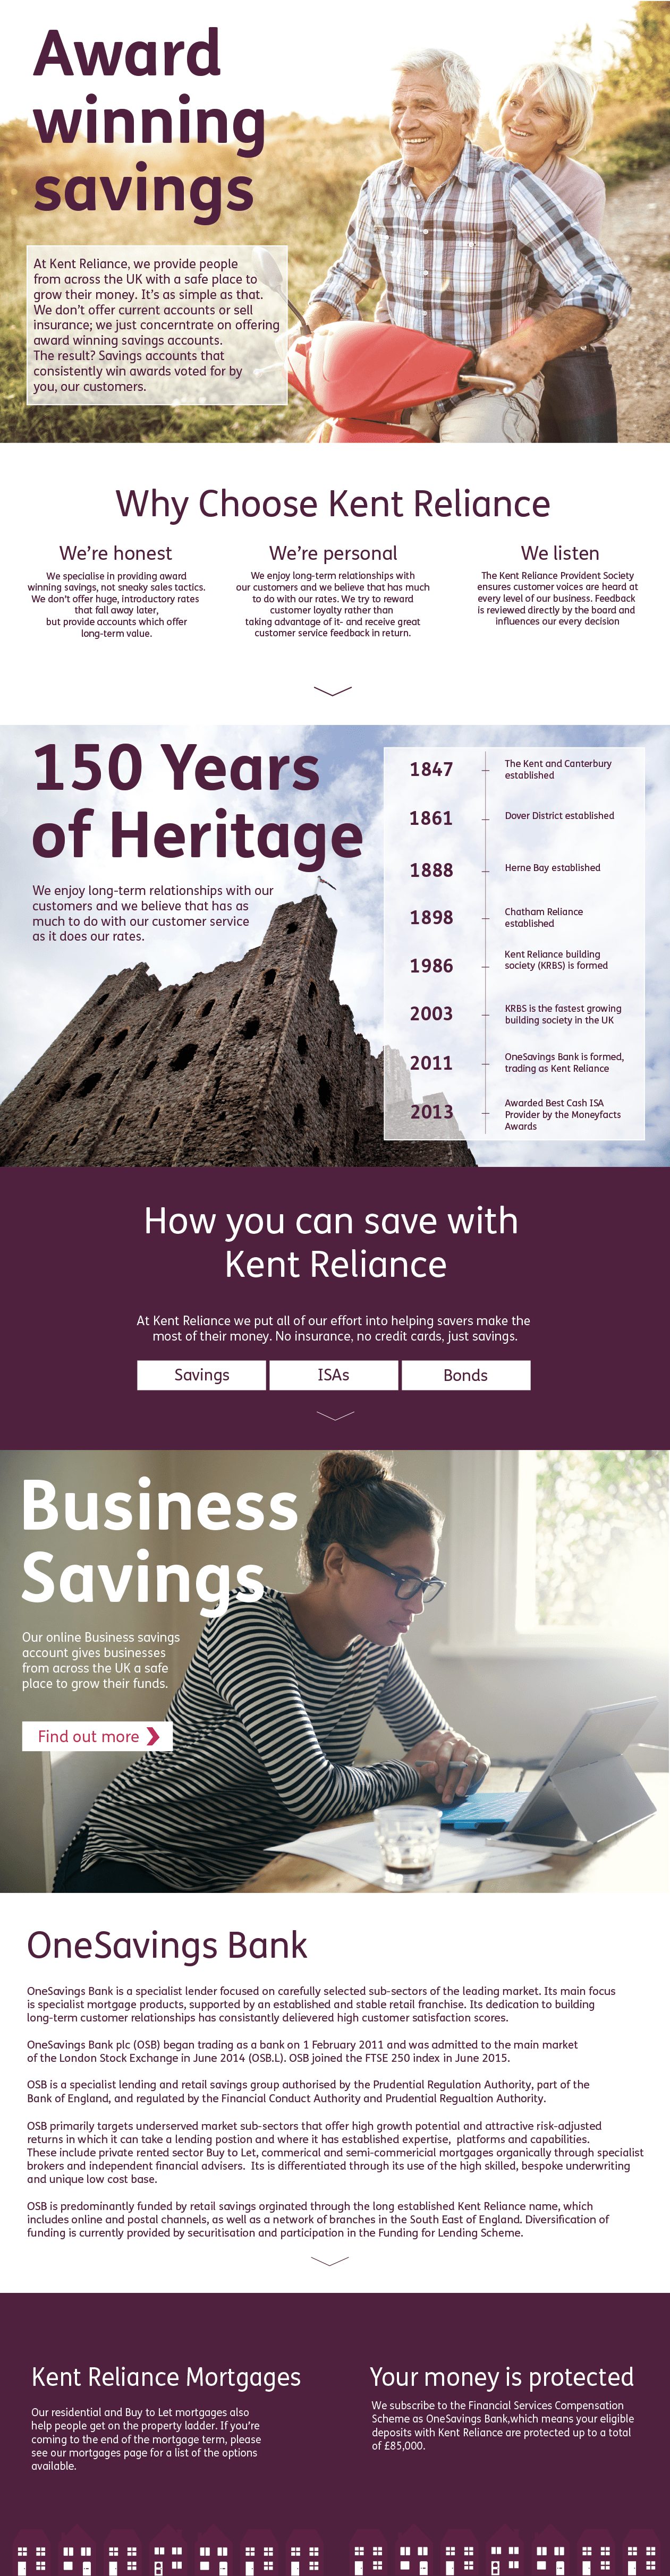 About Kent Reliance